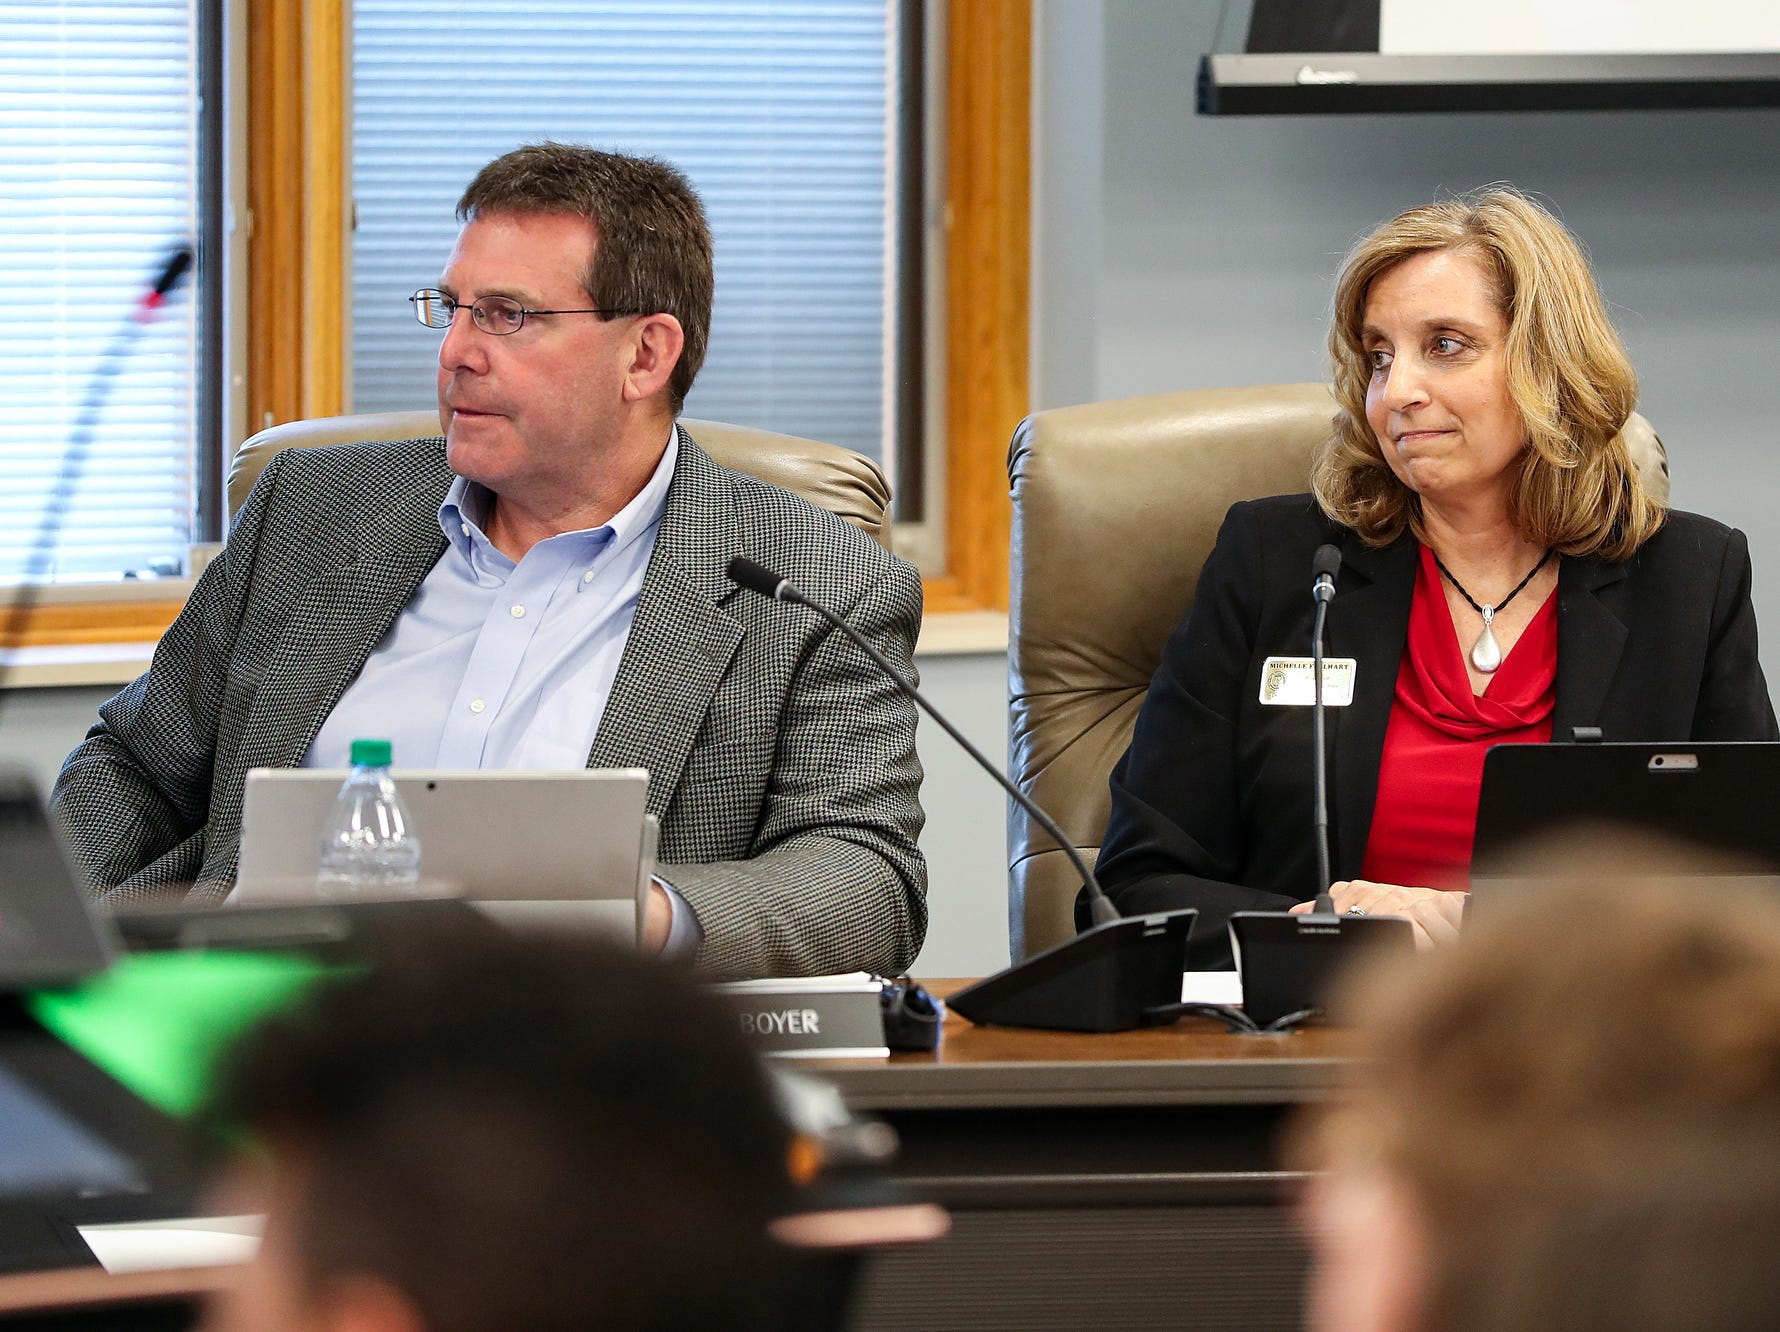 From left, board members Brad Boyer and Michelle Fullhart listen during the Hamilton Southeastern Schools board meeting at Cumberland Road Elementary in Fishers, Ind., Wednesday, May 8, 2019. The board voted 5-2 to adopt an anti-discrimination policy including language specifically prohibiting discrimination and harassment based on gender identity and sexual orientation.